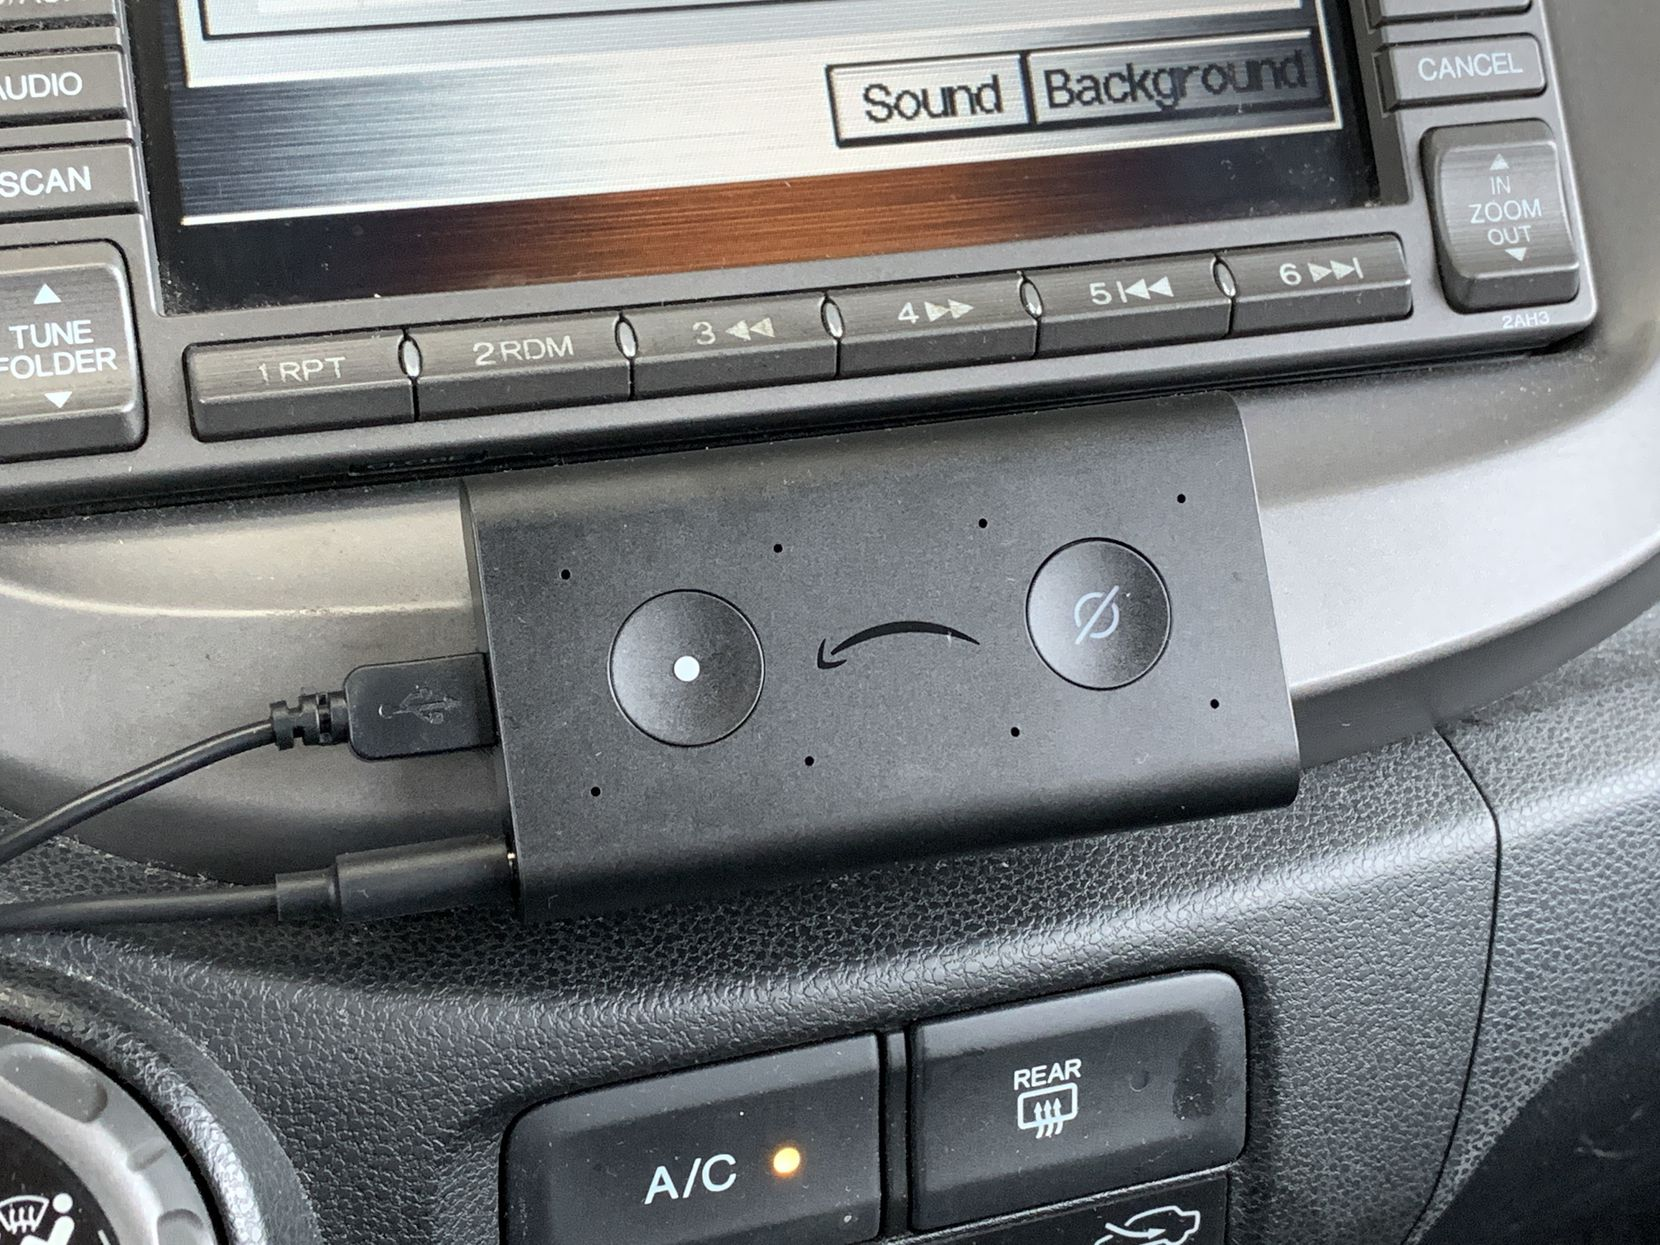 The Echo Auto in its spot under my car's navigation screen.